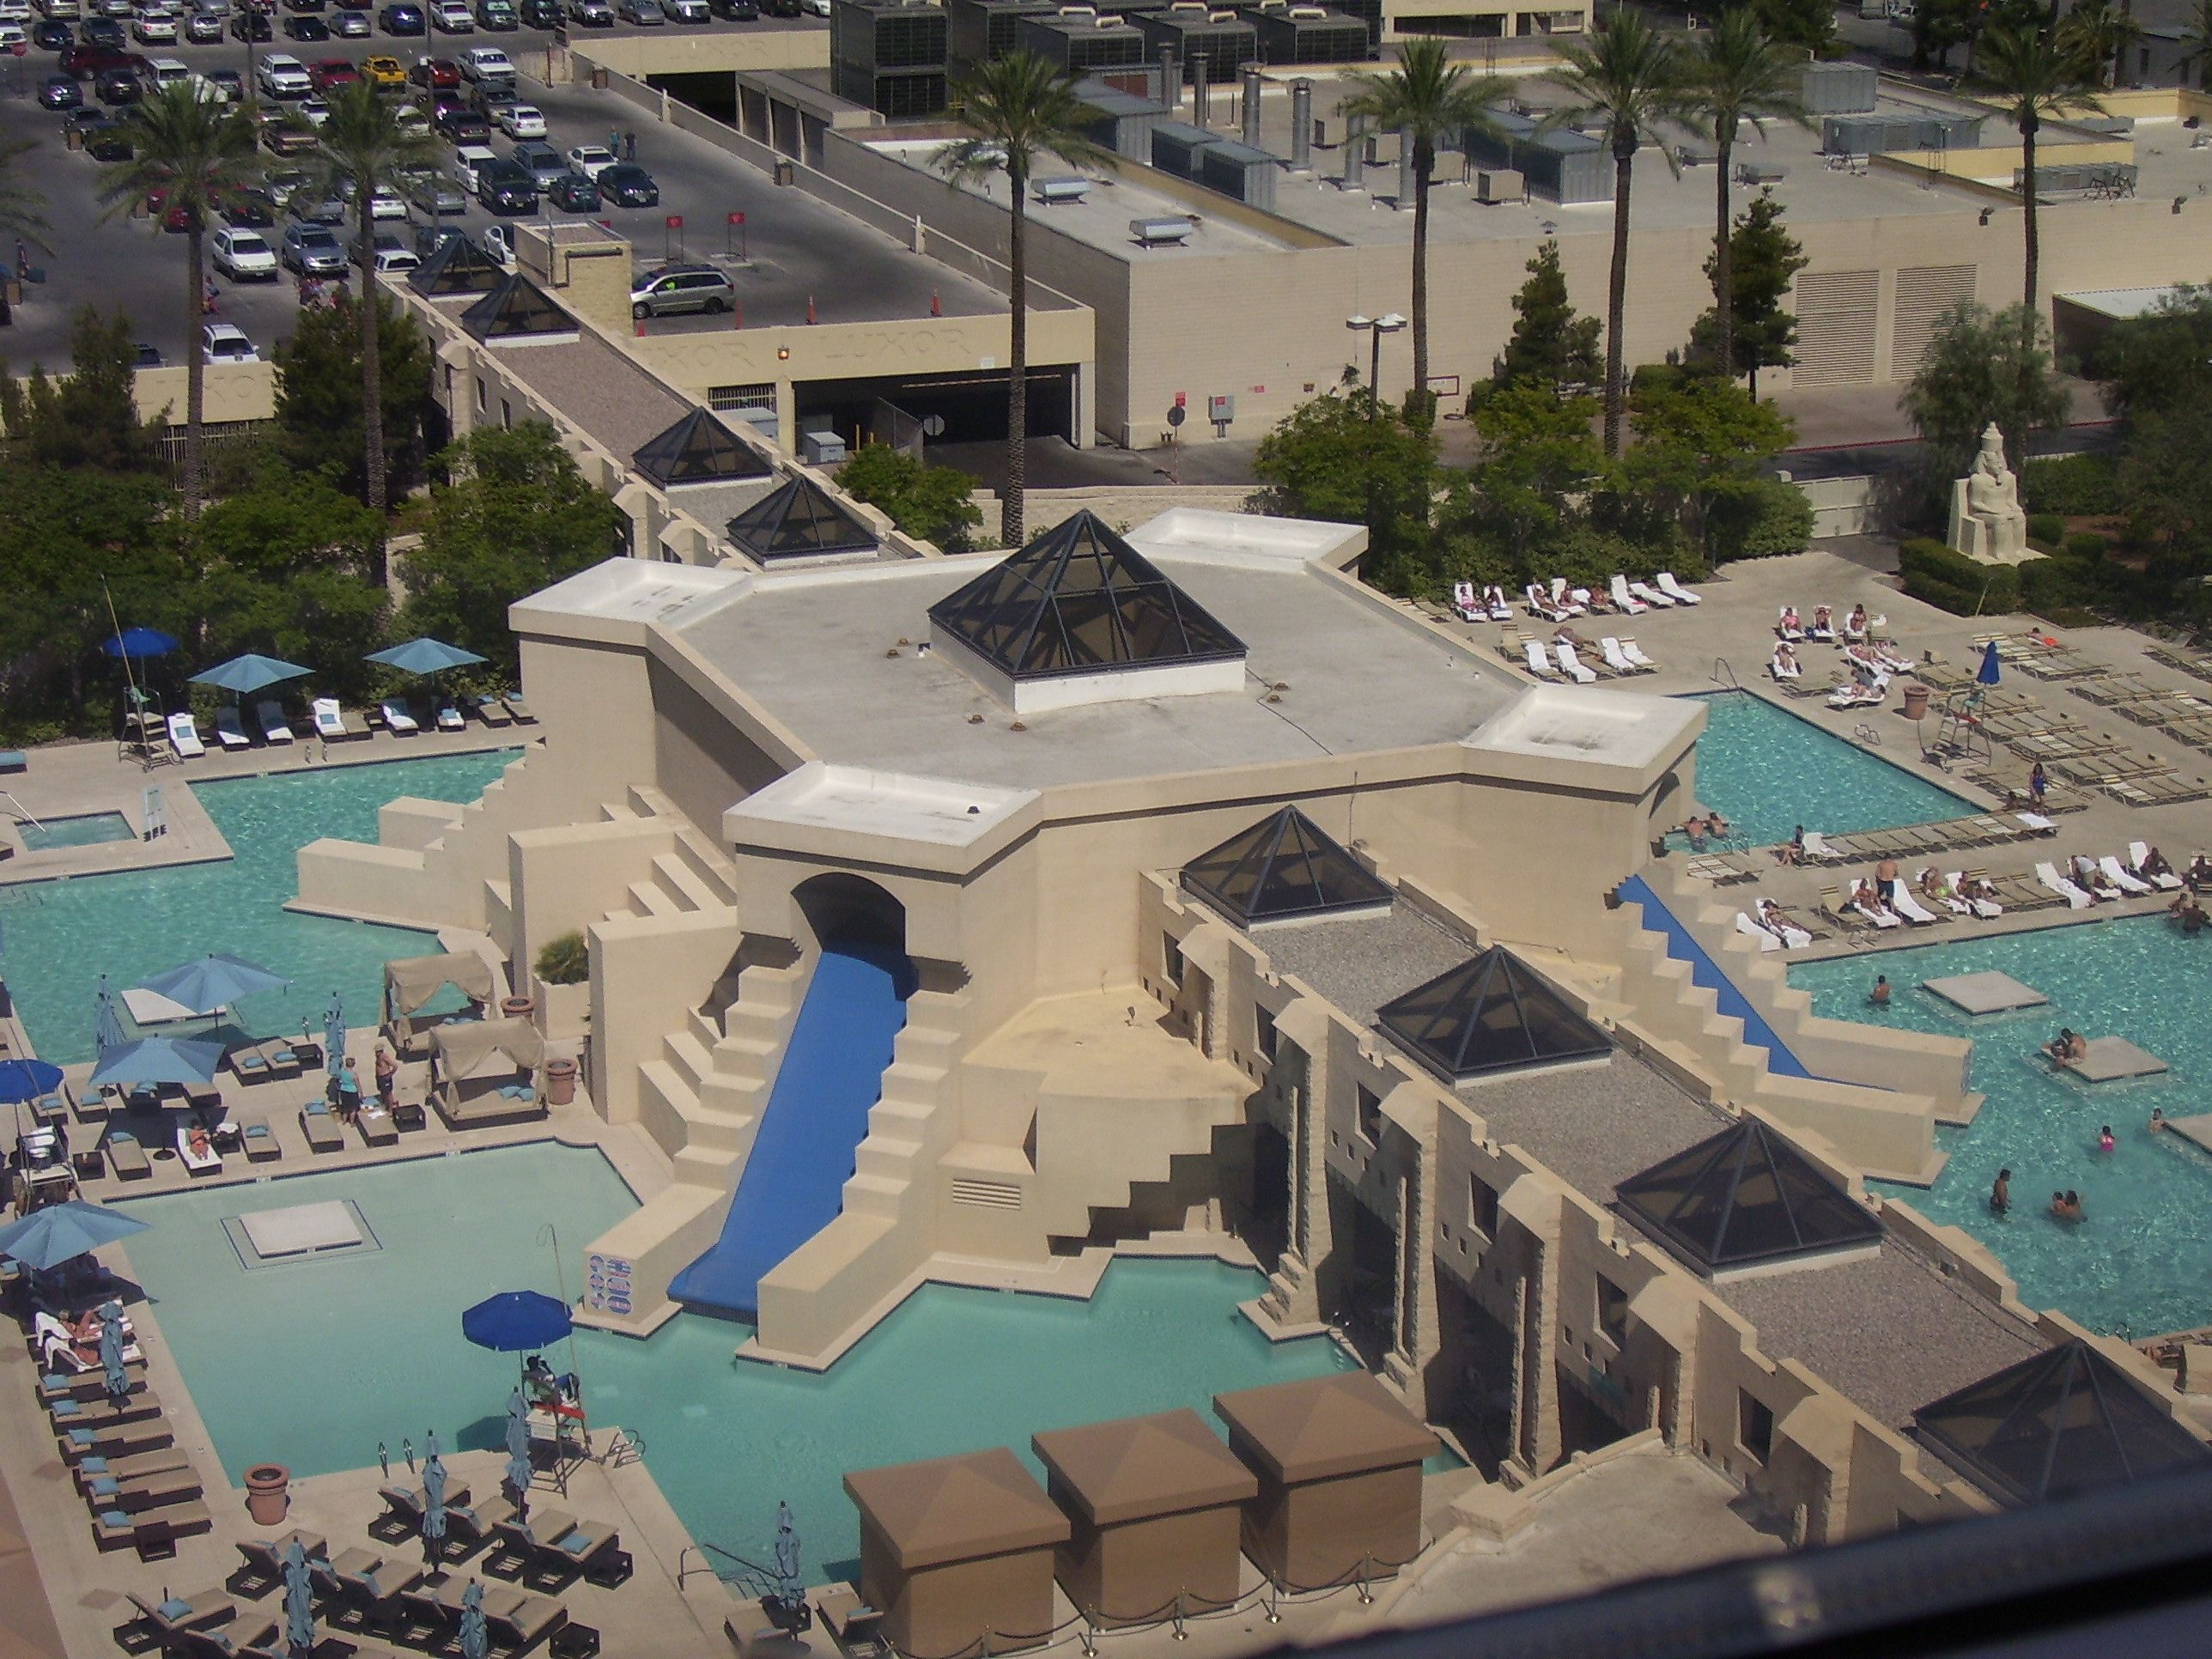 Pin By Holly Zintel On Places I Ve Been Vegas Baby Vegas Vacation Luxor